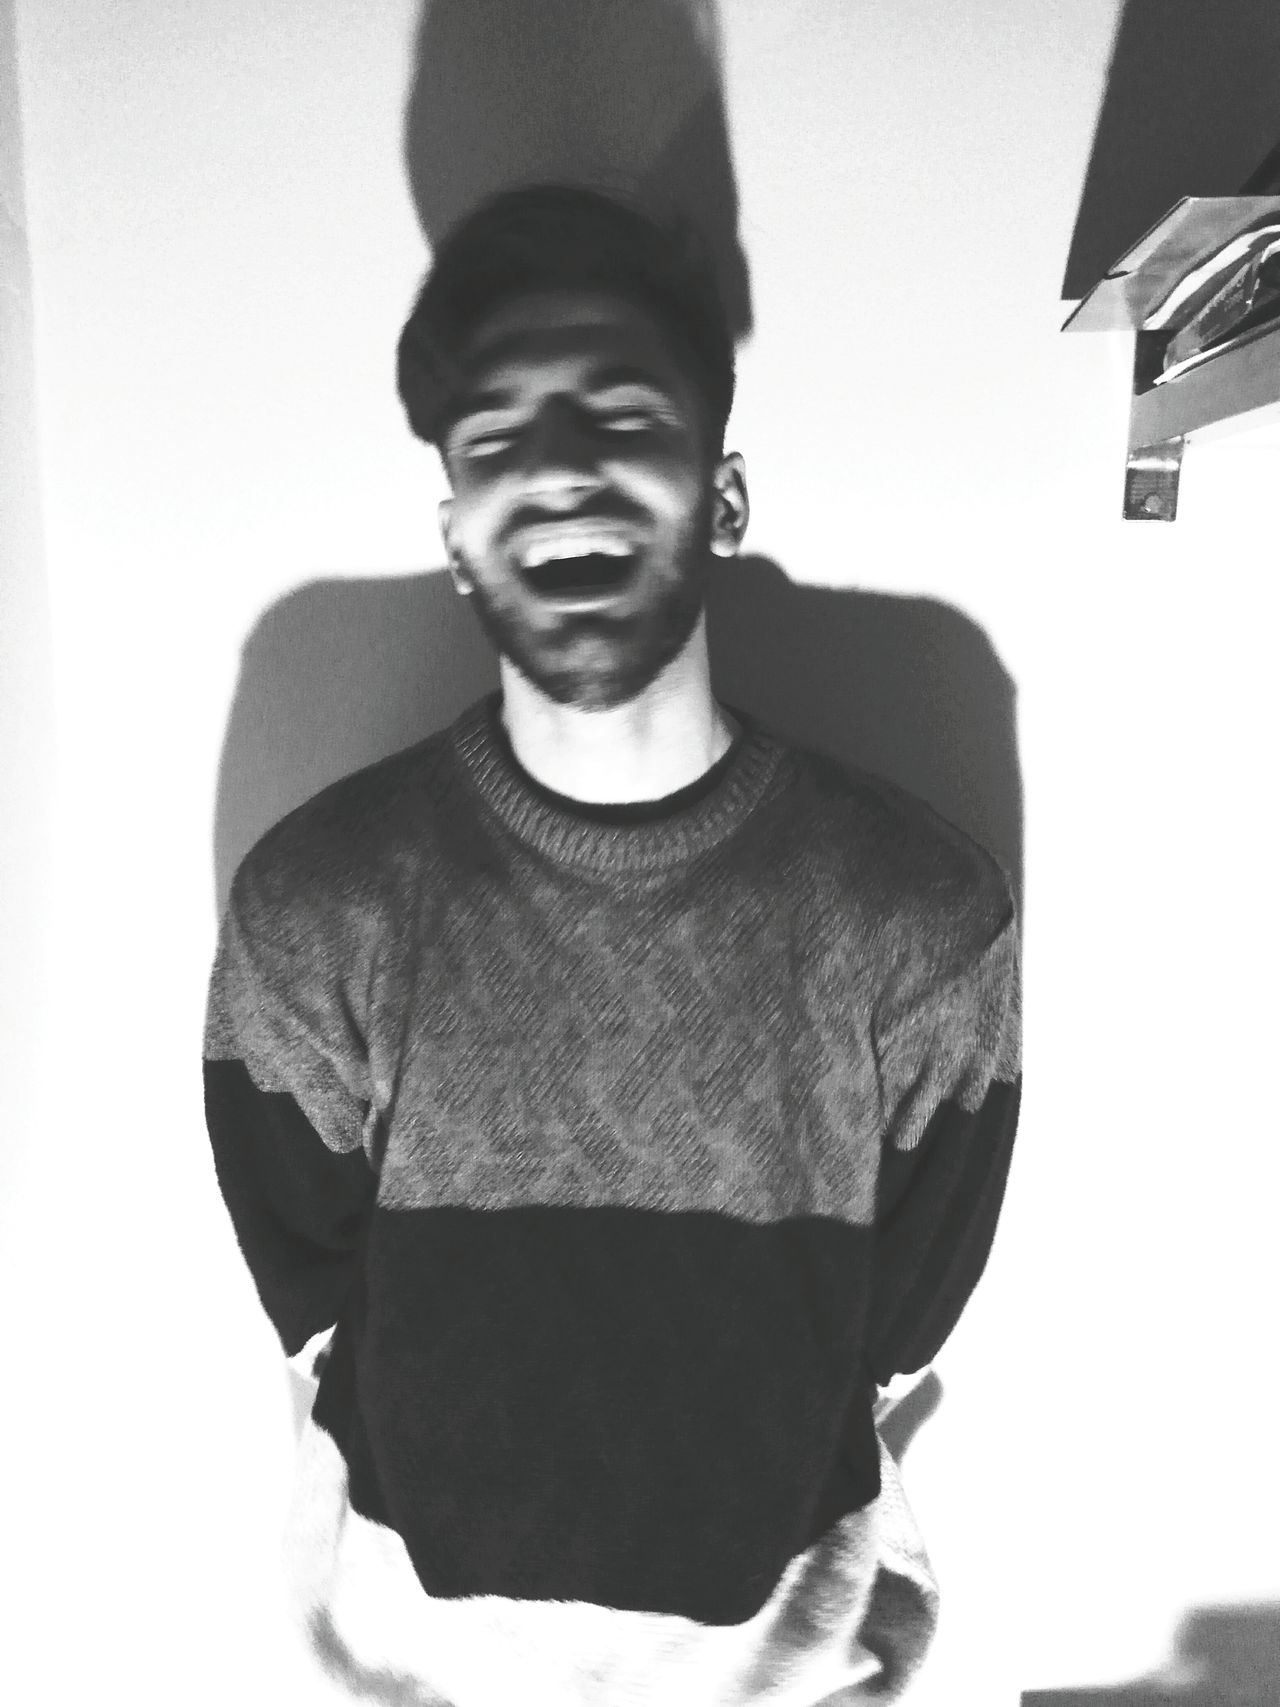 Never stop laughing, even in your lowest lows. Portrait Front View Looking At Camera One Person One Man Only Young Adult Indoors  Day Blackandwhite Blackandwhite Photography Black And White Collection  Black And White Portrait Black & White Young Men Young Boy Laugh Laughing Out Loud